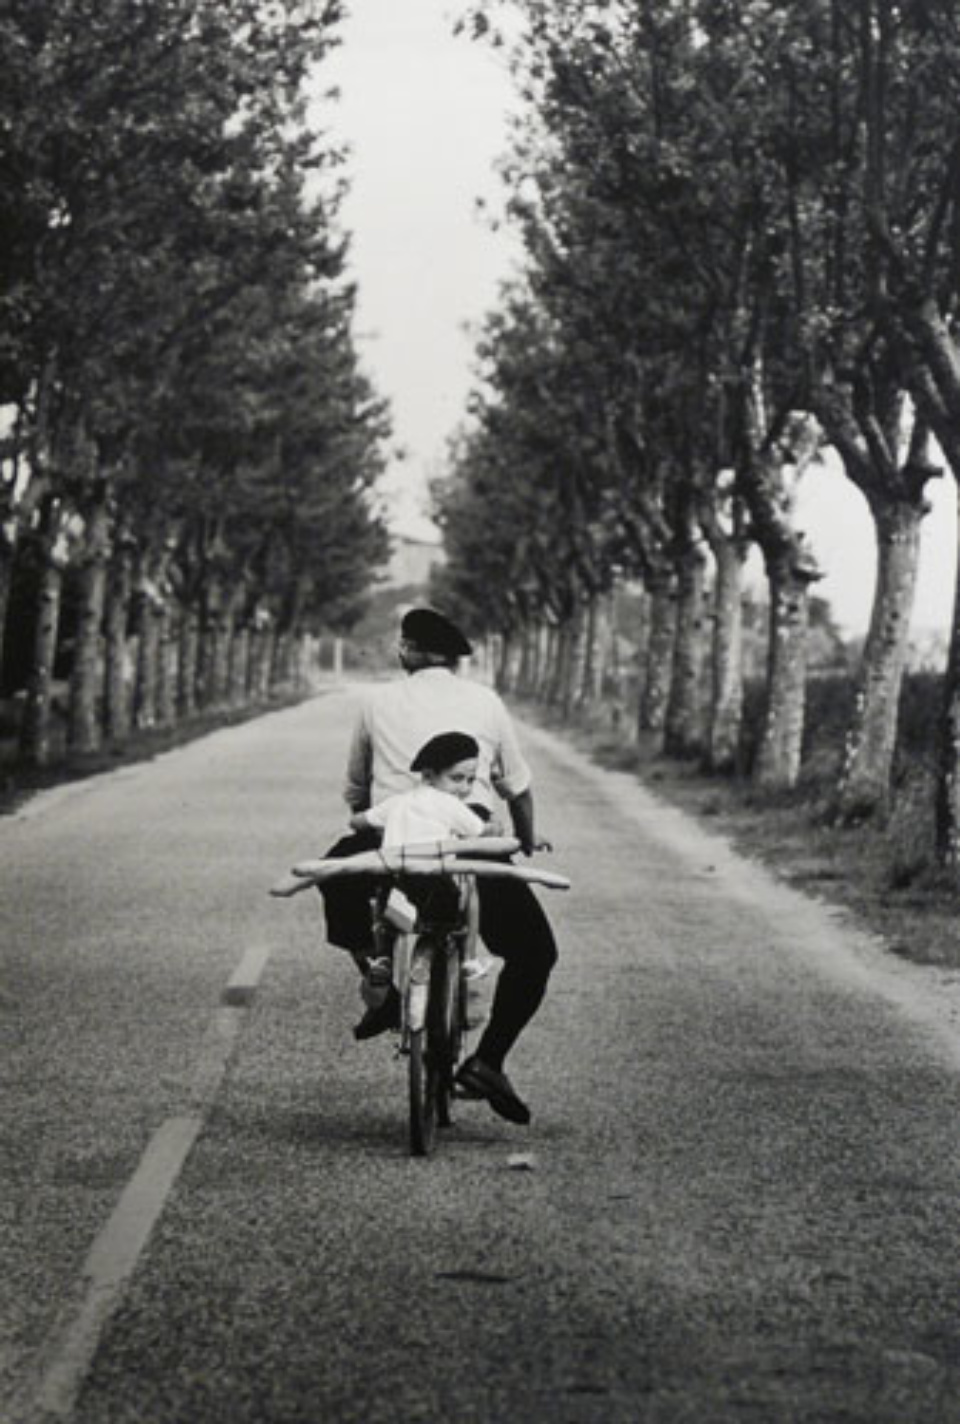 Elliott Erwitt: Provence France, 1955 Gelatin Silver Print Signed, titled, dated Available in different formats